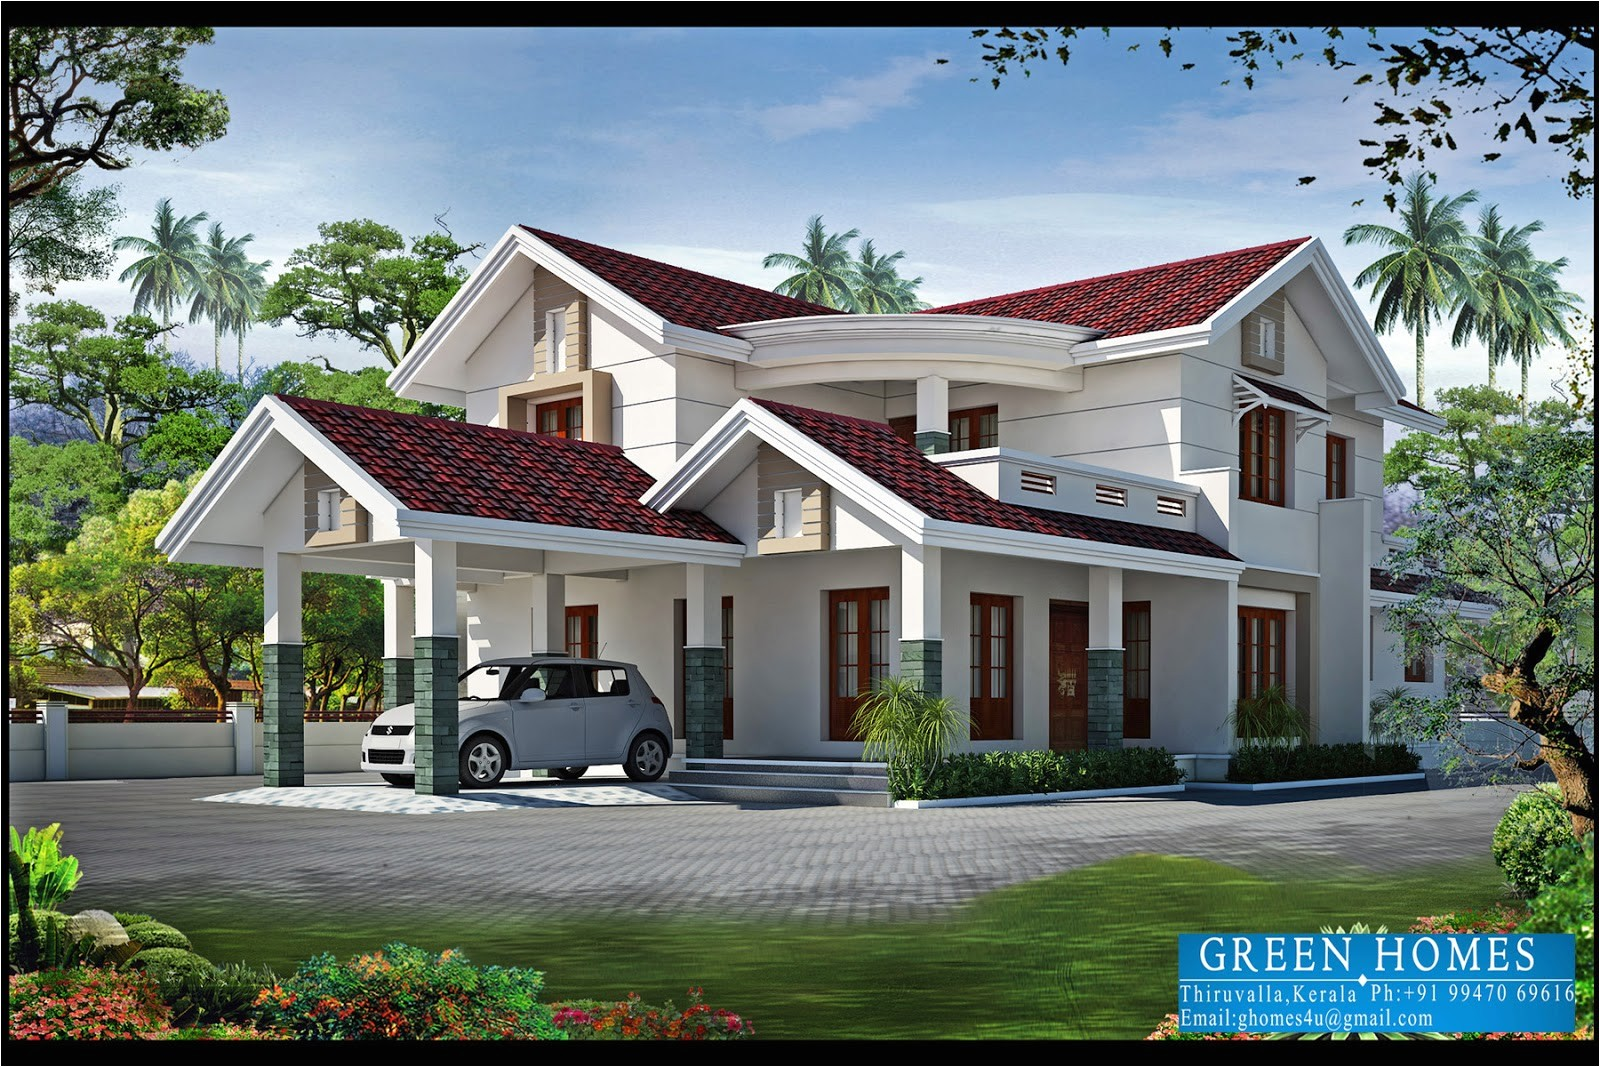 4bhk kerala home design 2550 sqfeet